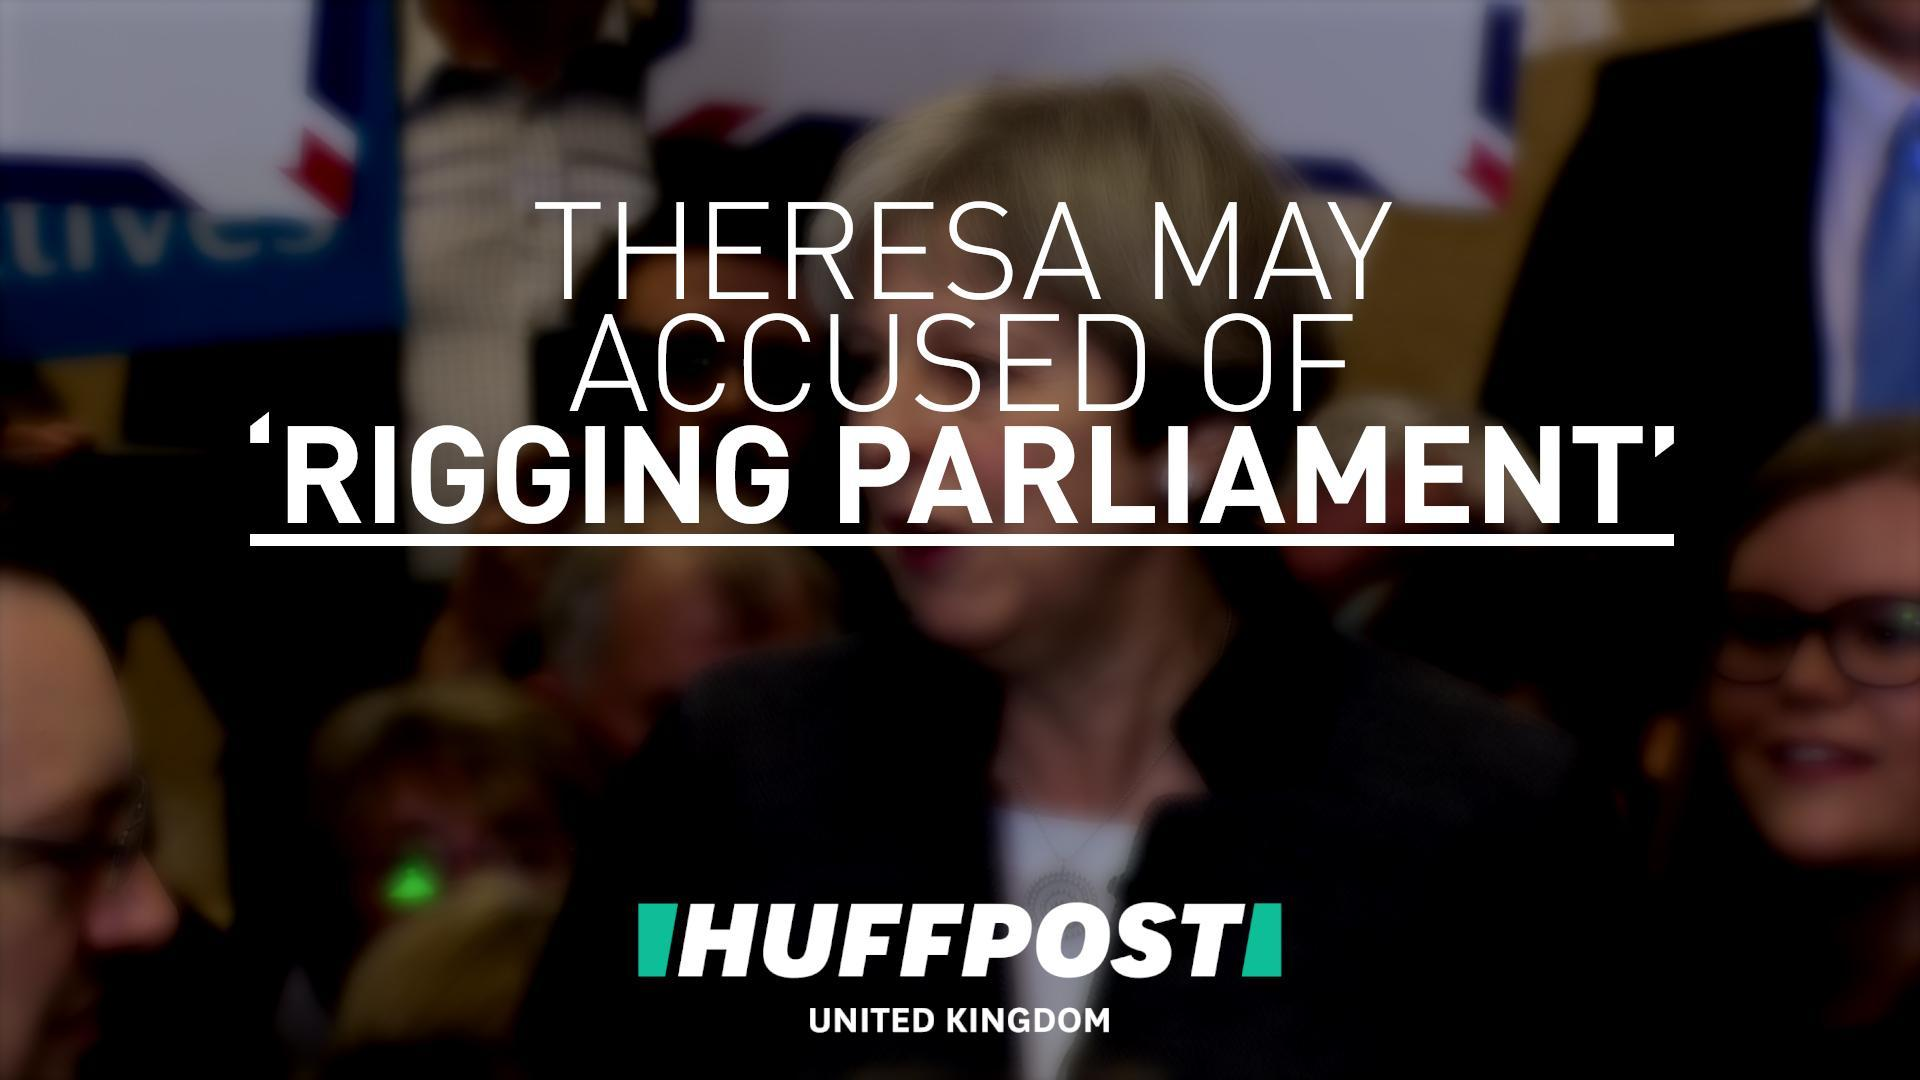 Theresa May Accused Of 'Rigging Parliament' With New Move To Give Tories Majority On Legislation